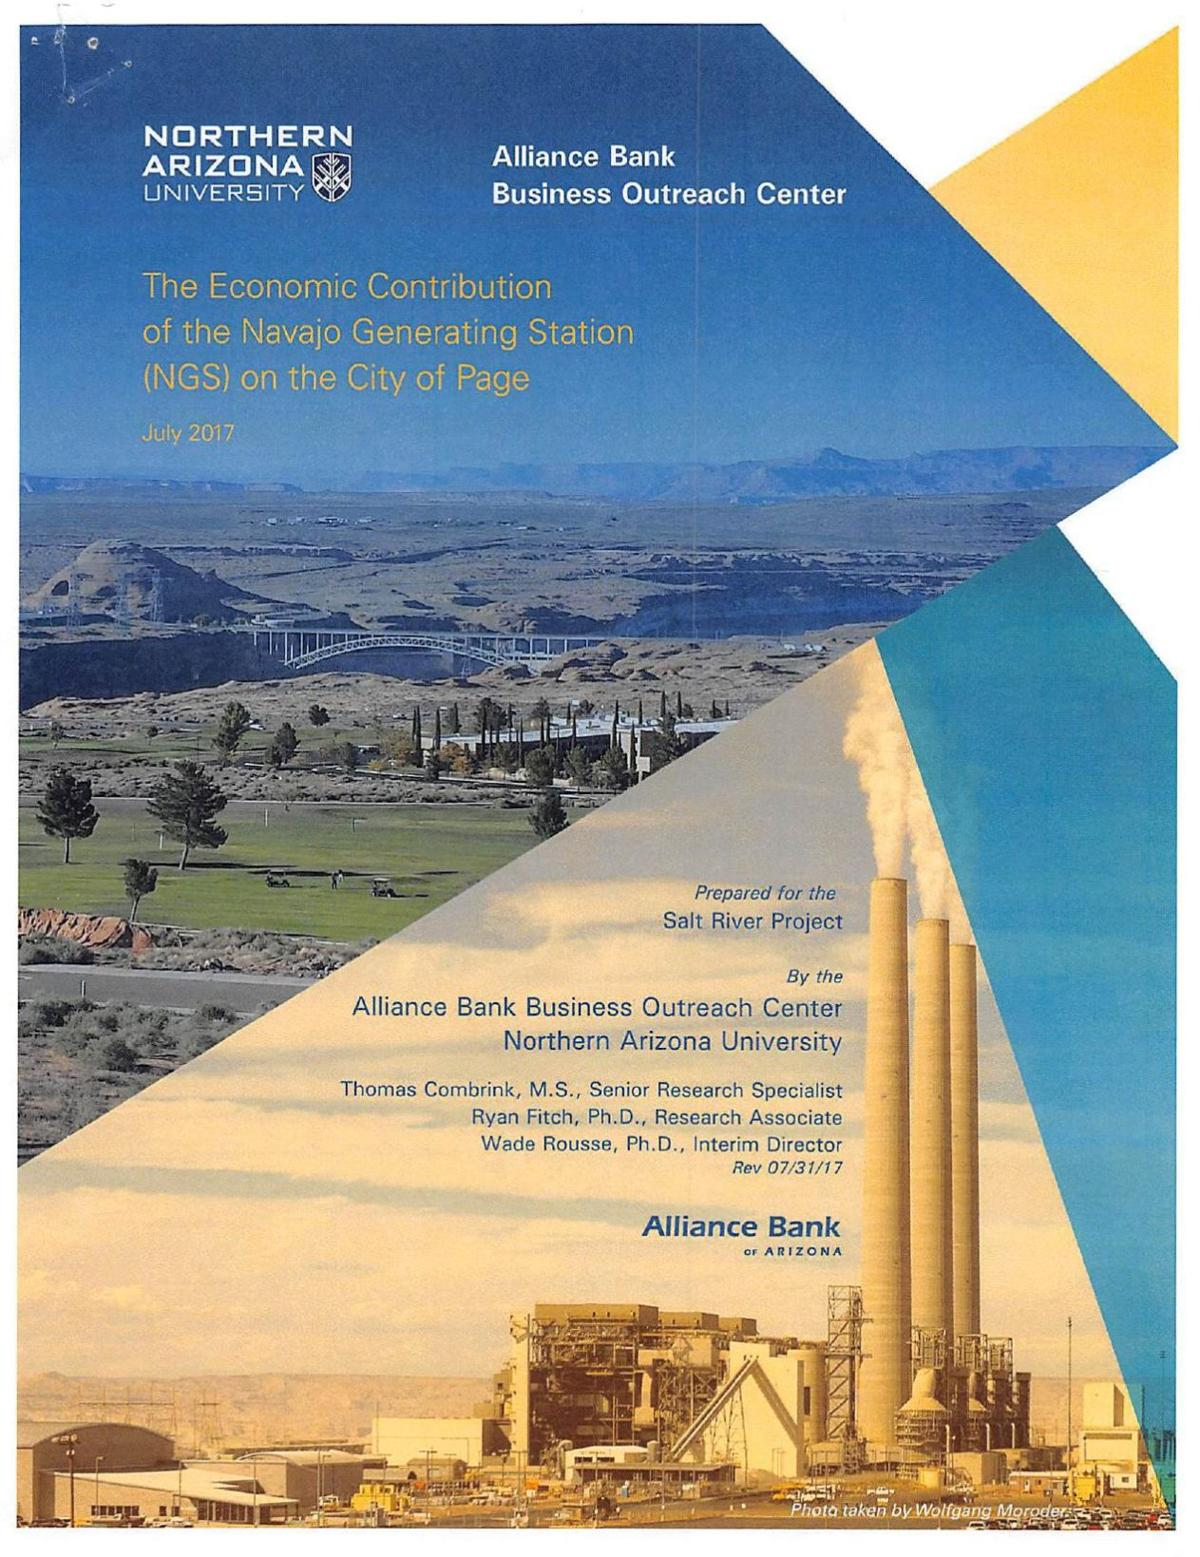 The Economic Contribution of the Navajo Generating Station on the City of Page